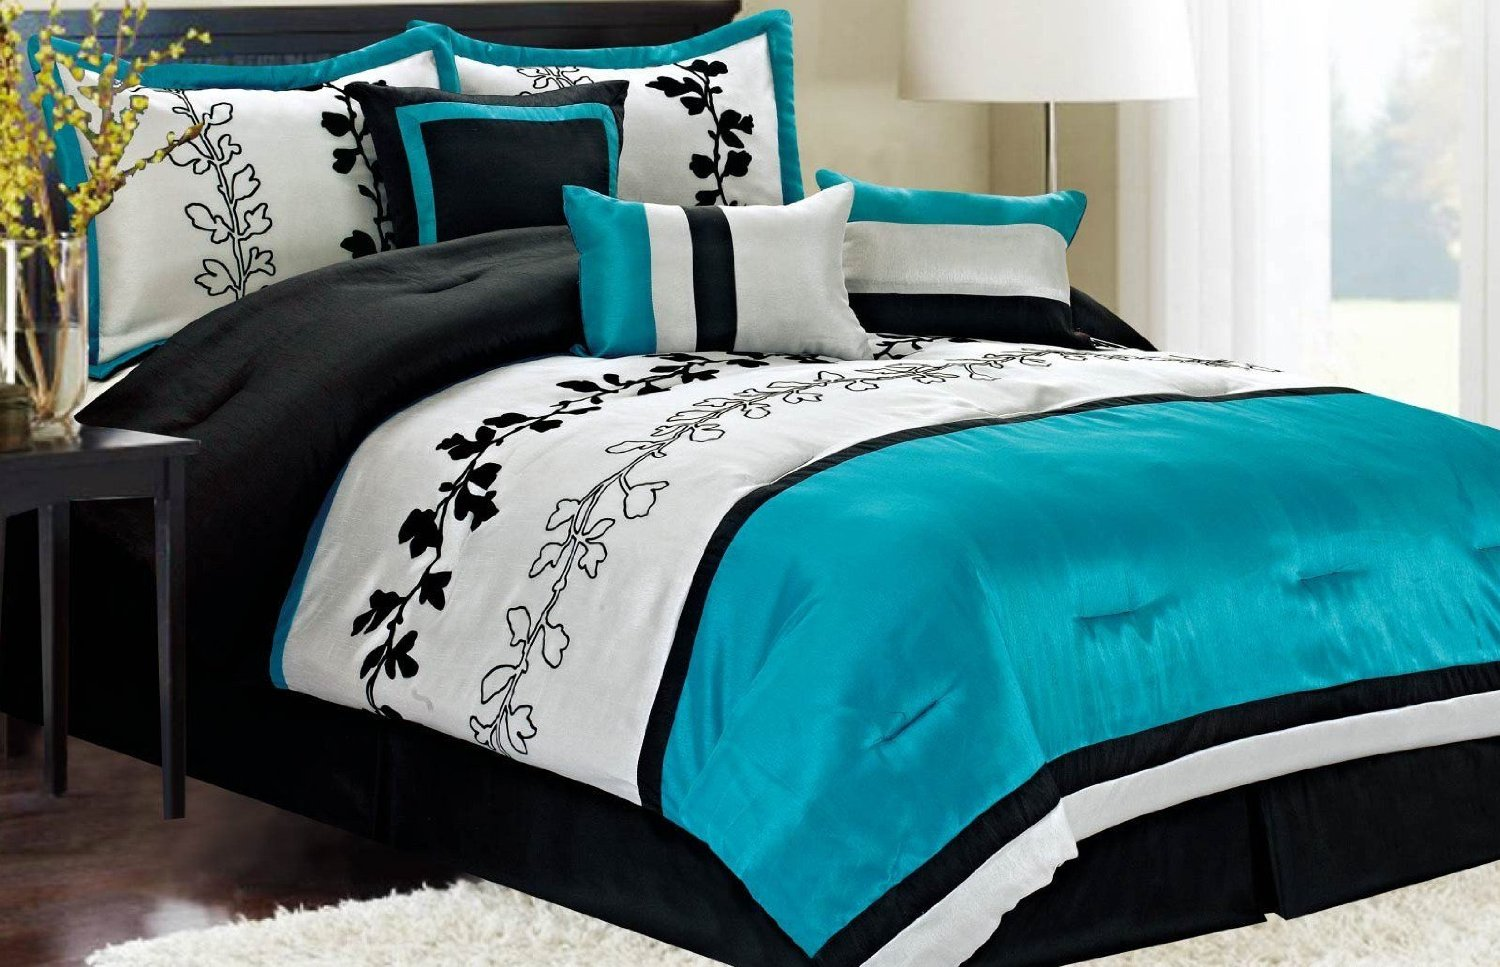 Queen Sized Bed Sheets With Cool Designs